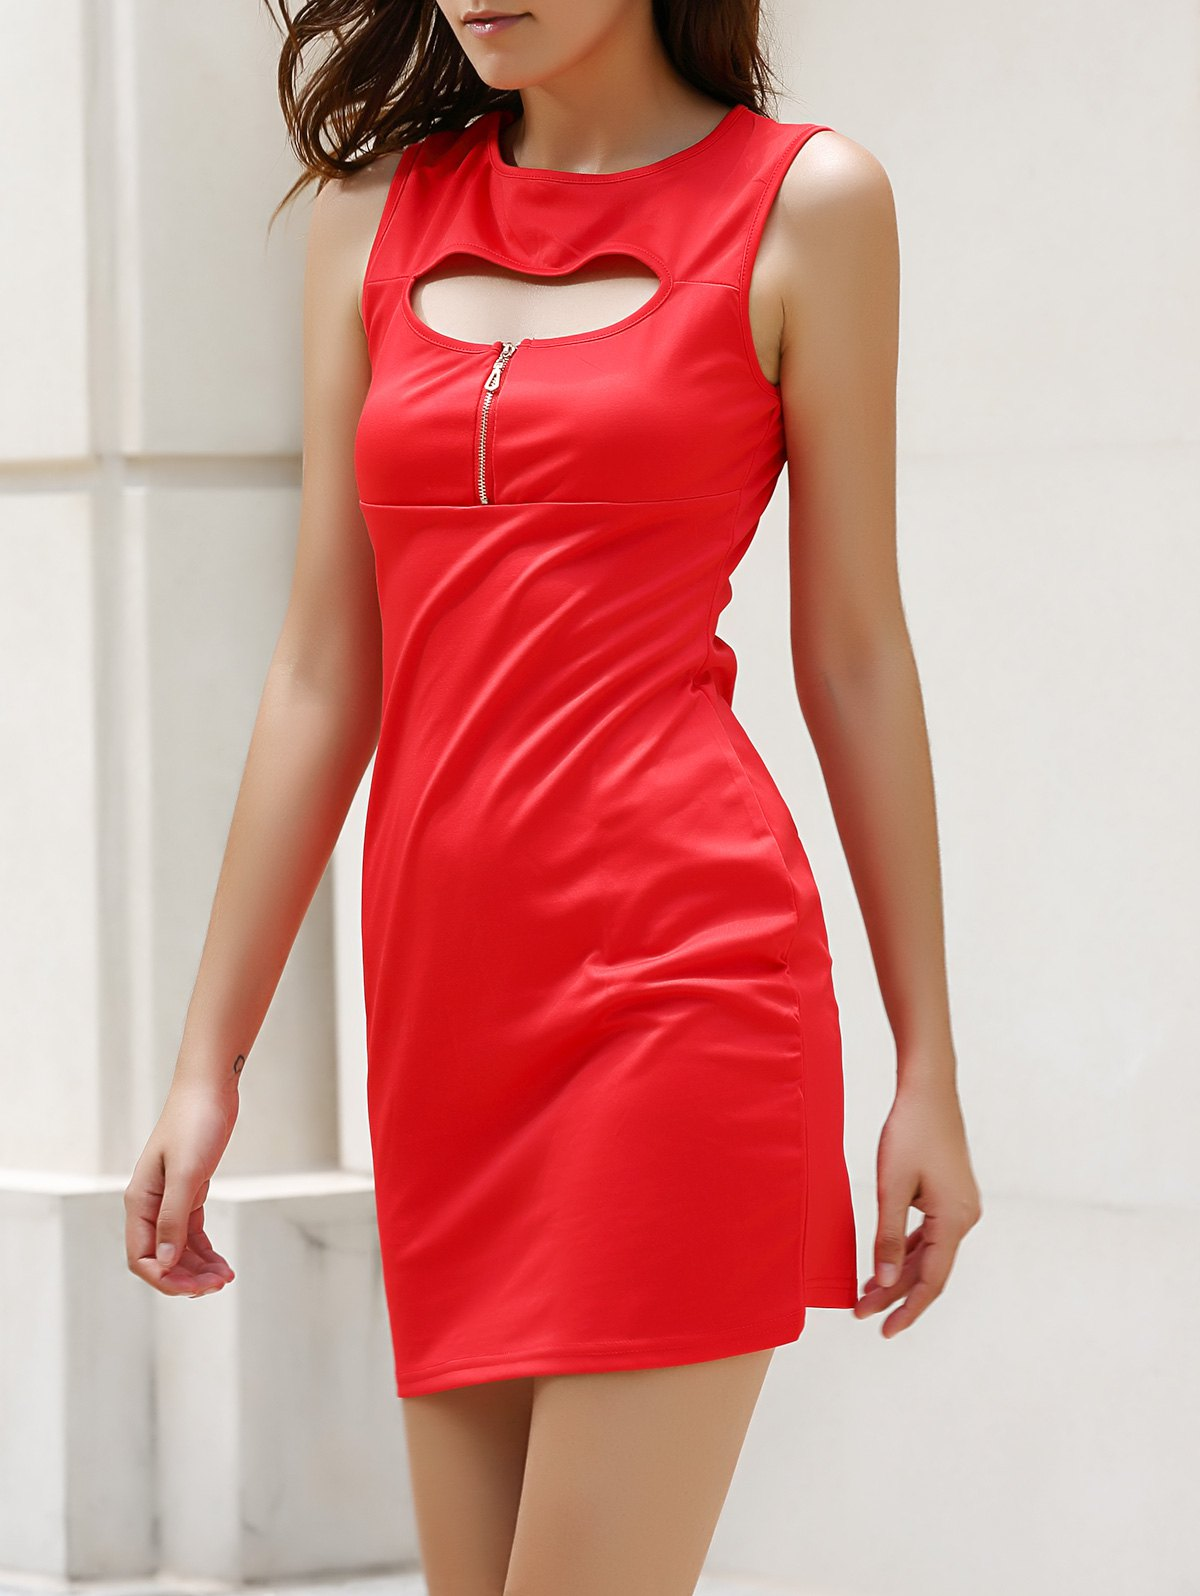 Alluring Sleeveless Jewel Neck Zippered Cut Out Pure Color Women's Bodycon Dress - RED XL